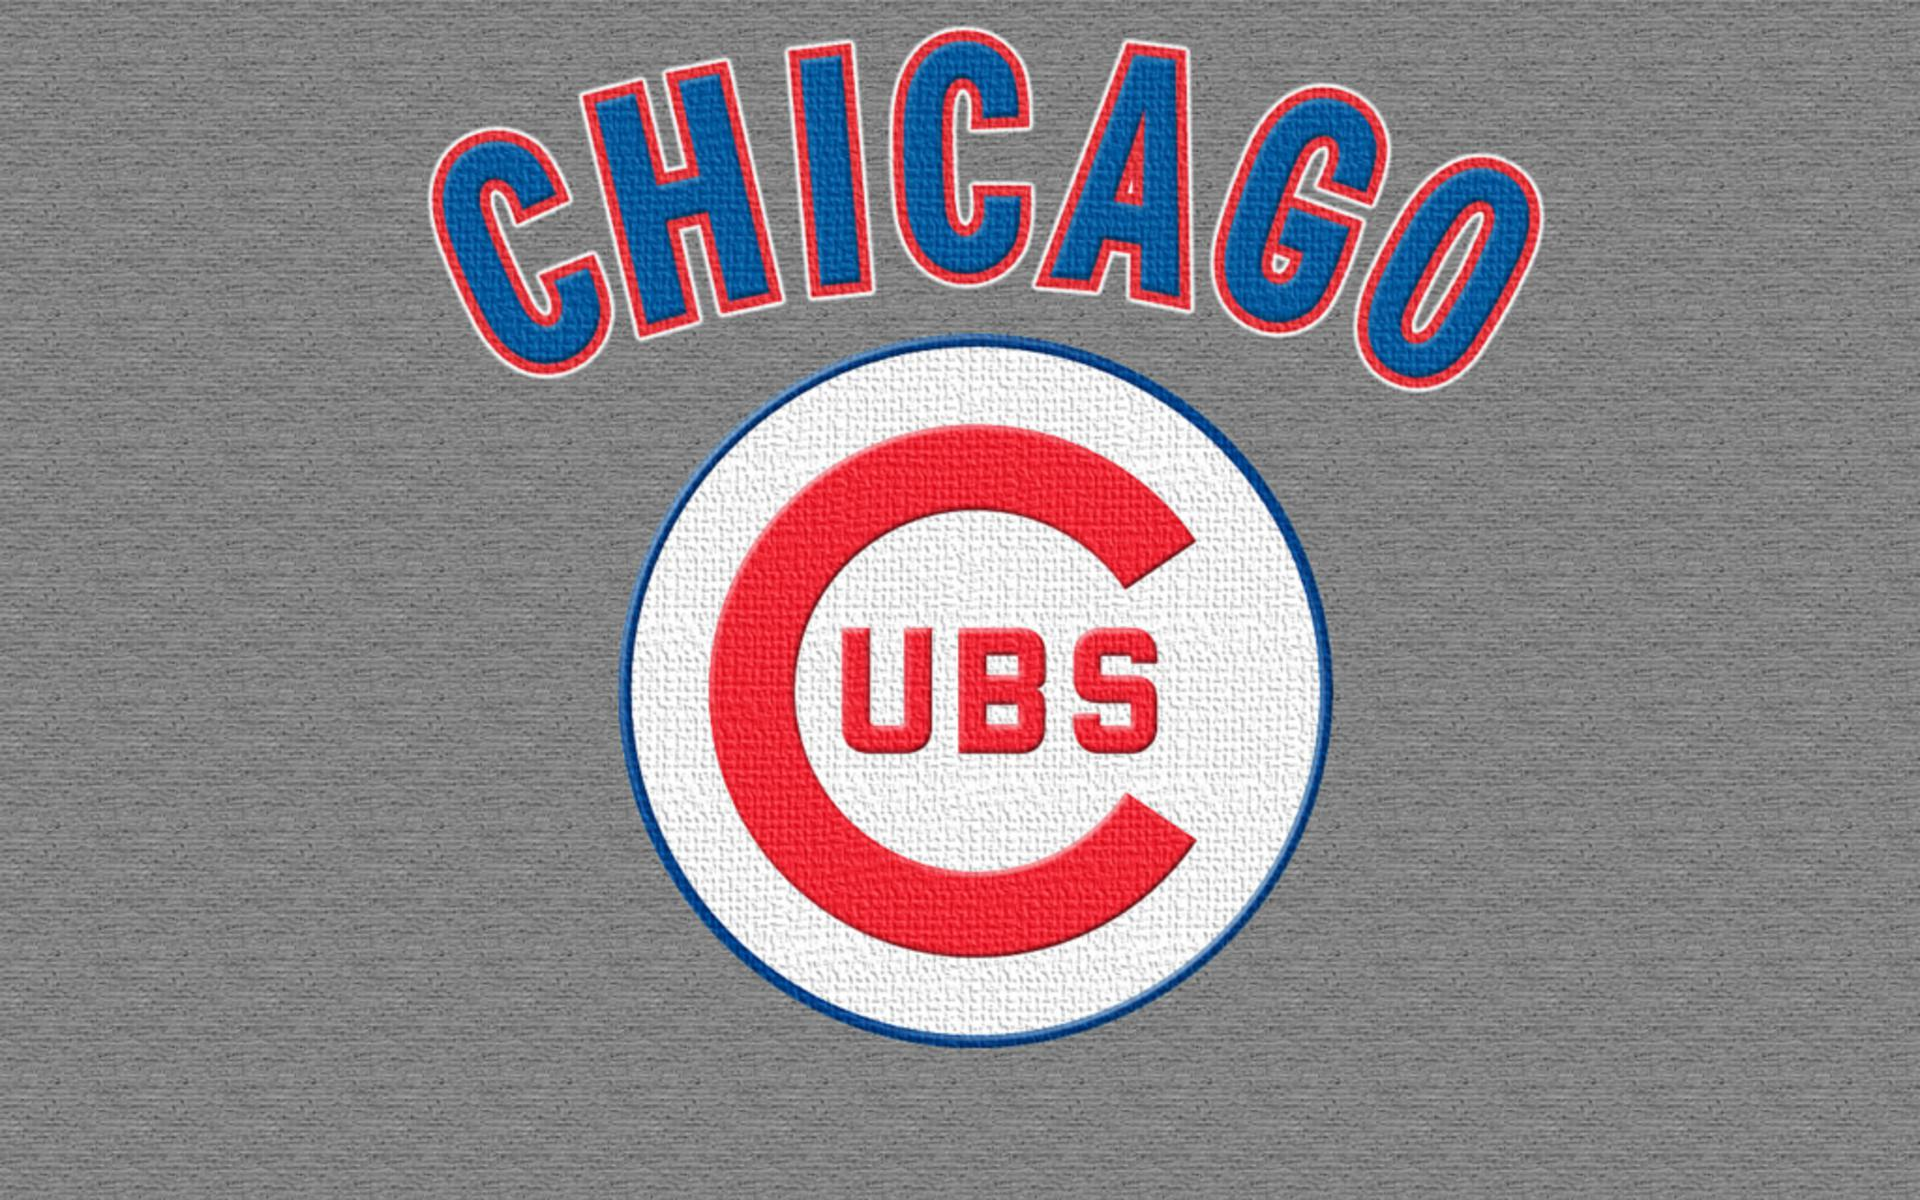 Chicago Cubs Wallpaper HD.